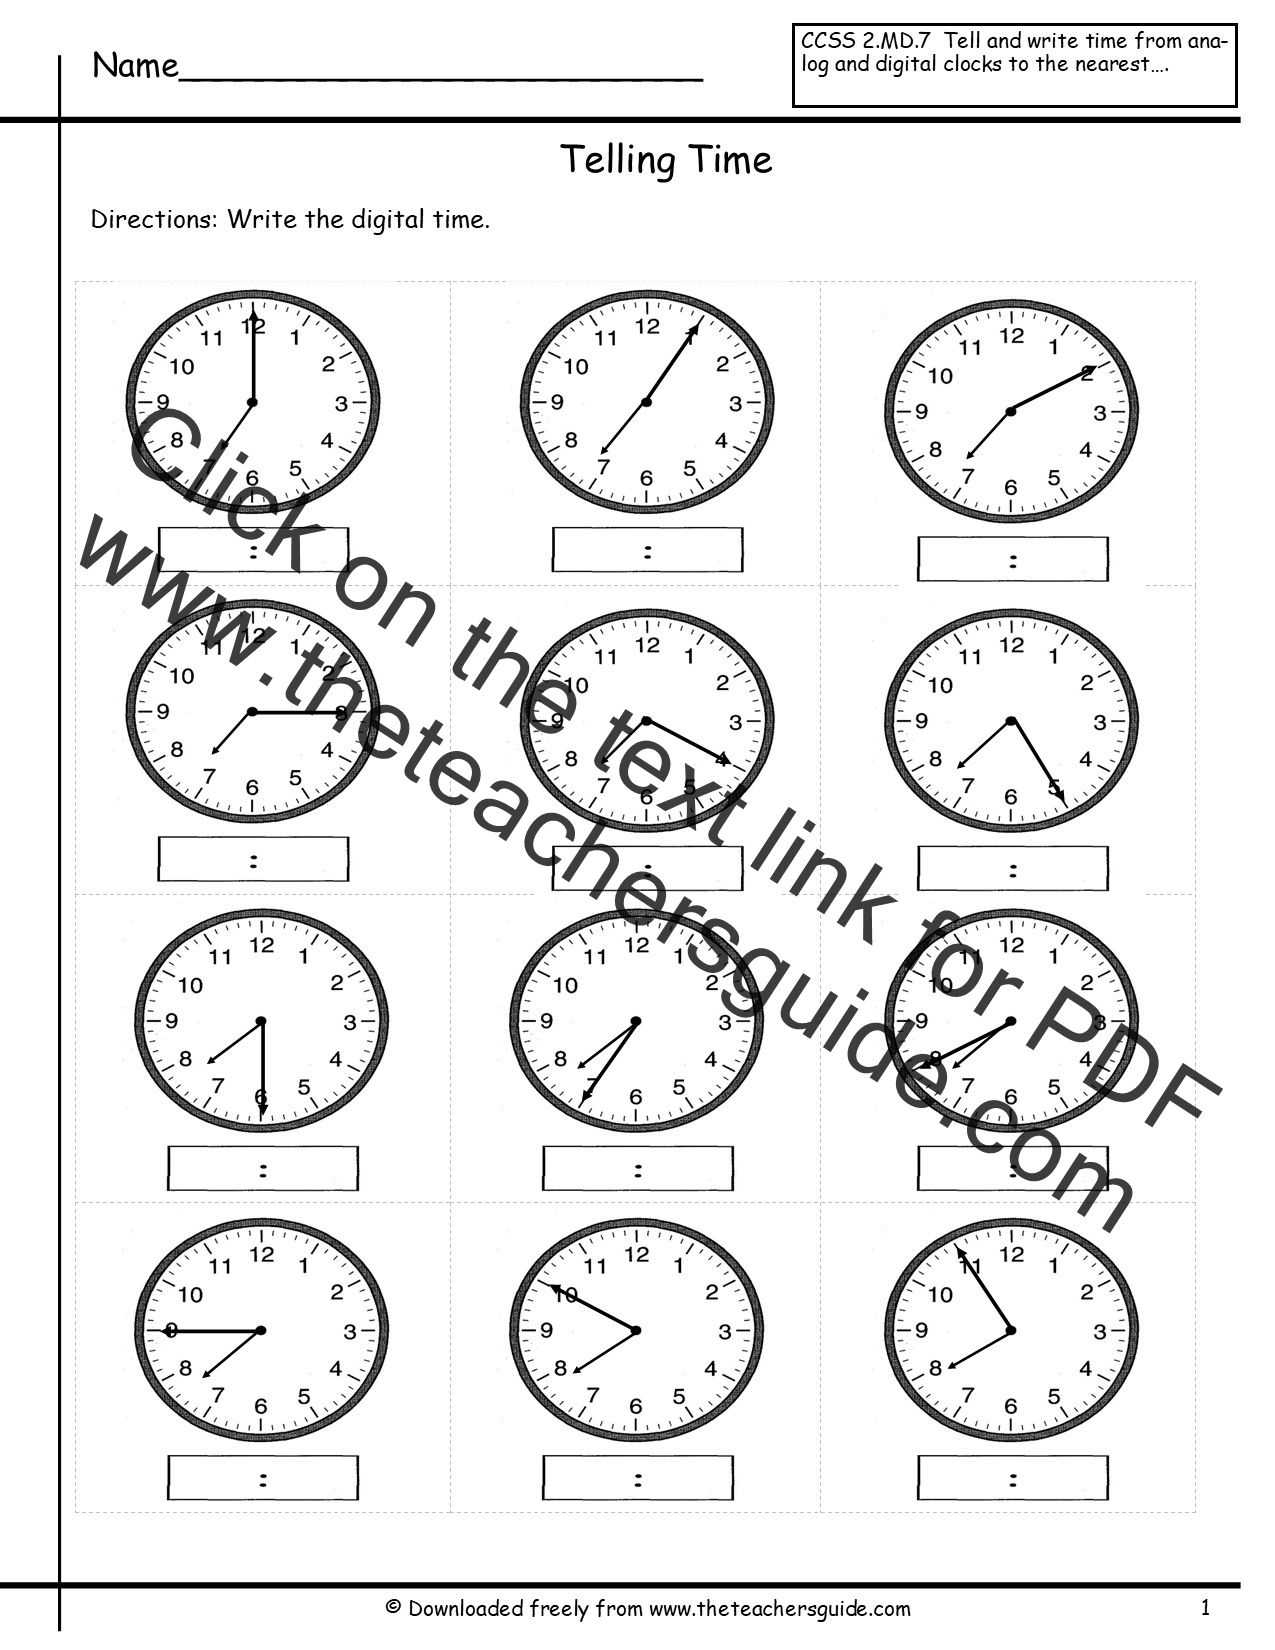 Aldiablosus  Unusual Telling Time Worksheets From The Teachers Guide With Luxury Telling Time Worksheets With Cute Shape Matching Worksheets Also Math Worksheet For First Grade In Addition Word Problem Worksheets Rd Grade And Factoring Out Gcf Worksheet As Well As Slope As A Rate Of Change Worksheet Additionally Rounding Worksheets For Rd Grade From Theteachersguidecom With Aldiablosus  Luxury Telling Time Worksheets From The Teachers Guide With Cute Telling Time Worksheets And Unusual Shape Matching Worksheets Also Math Worksheet For First Grade In Addition Word Problem Worksheets Rd Grade From Theteachersguidecom